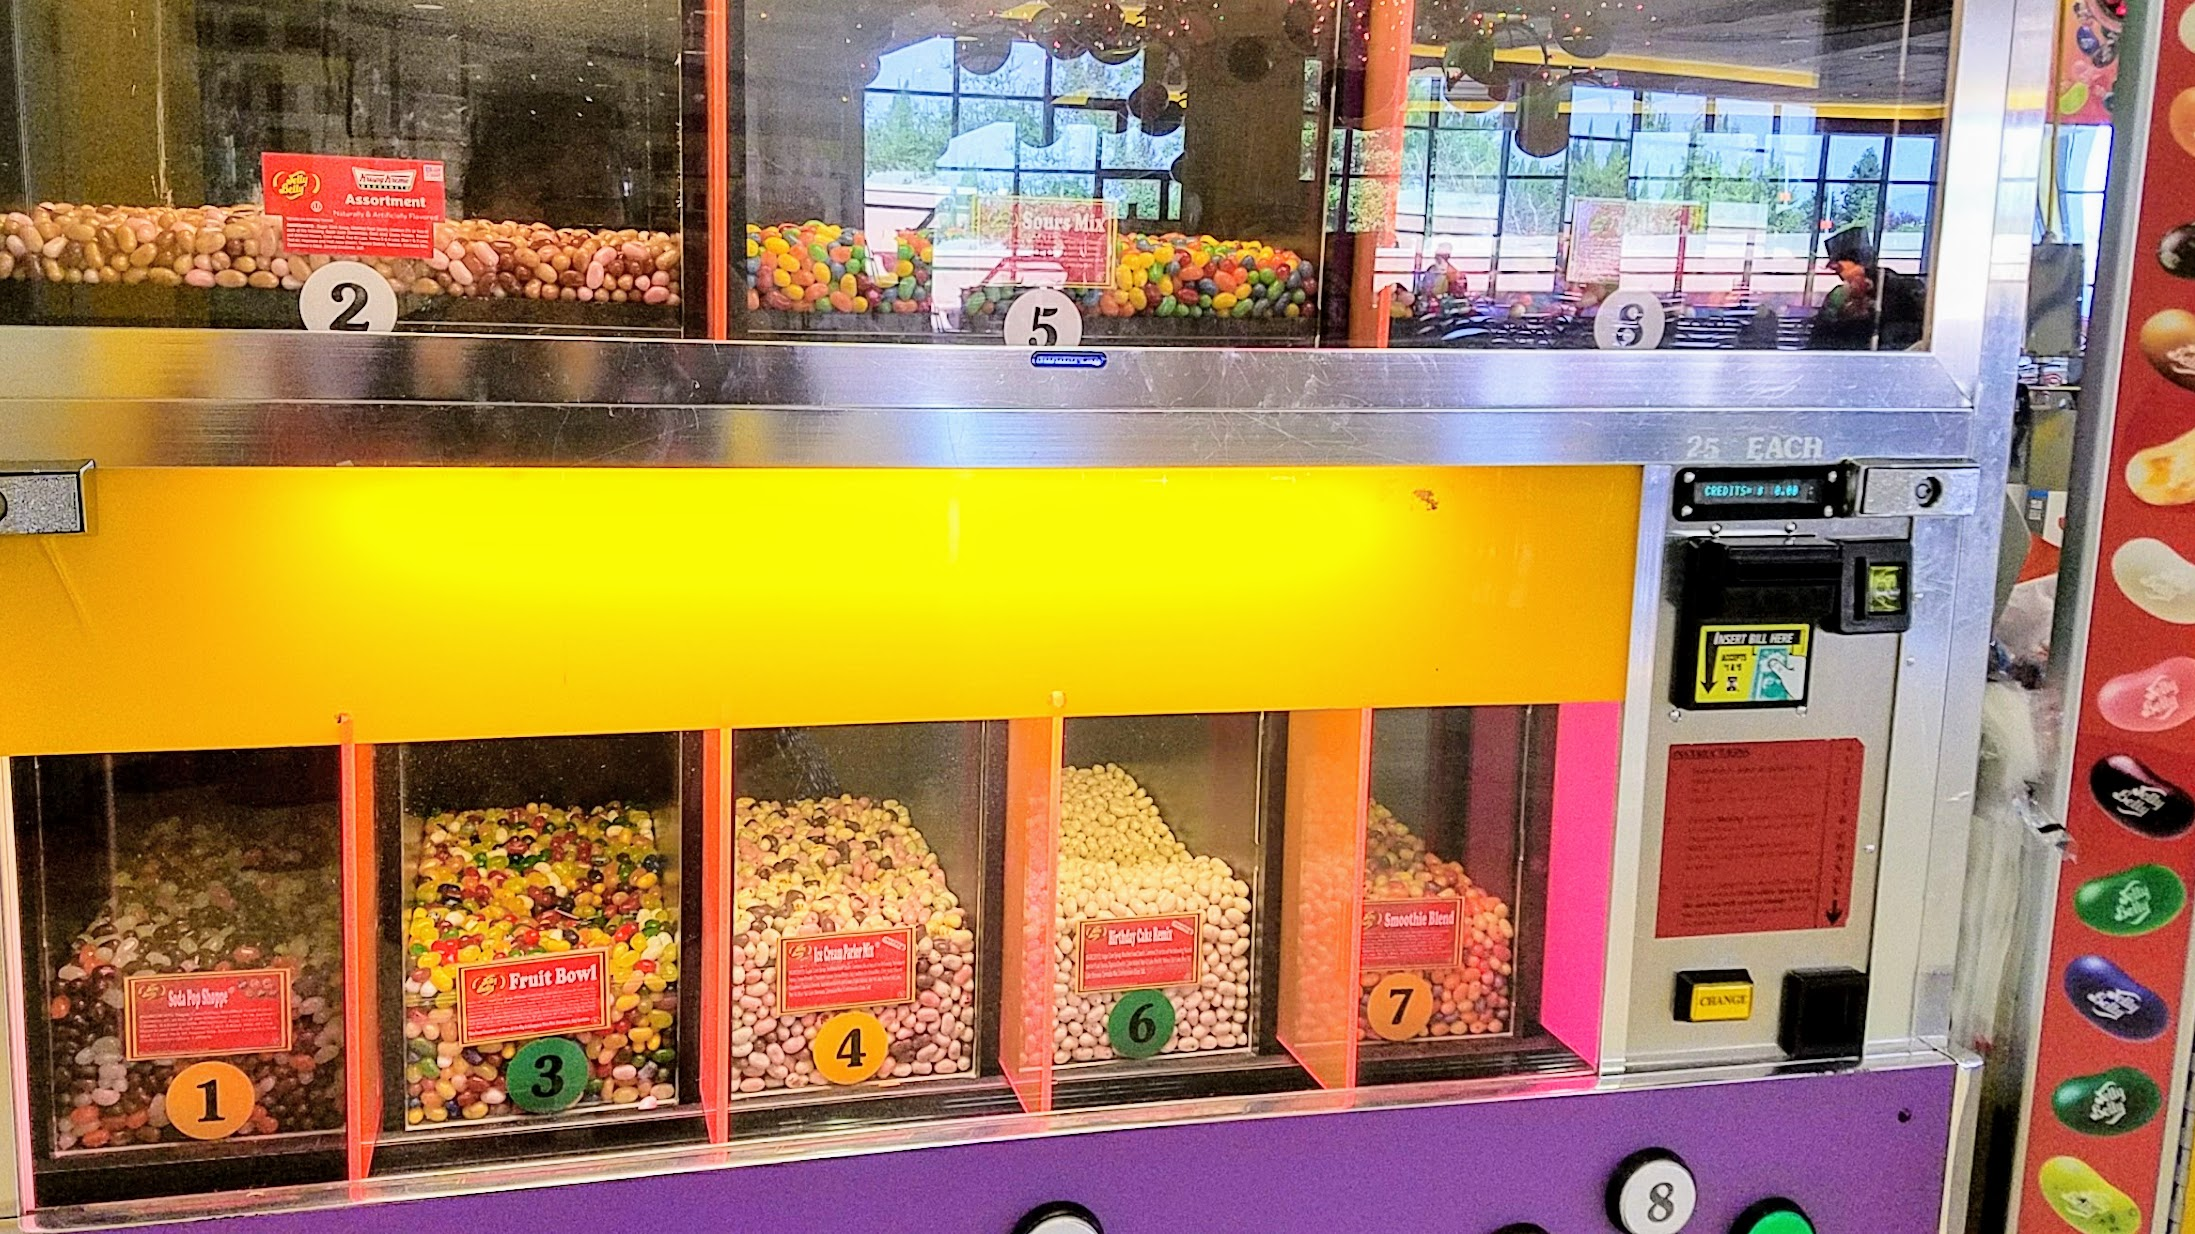 Jelly Belly Factory, Cafe area in Fairfield, California has fun candy machines